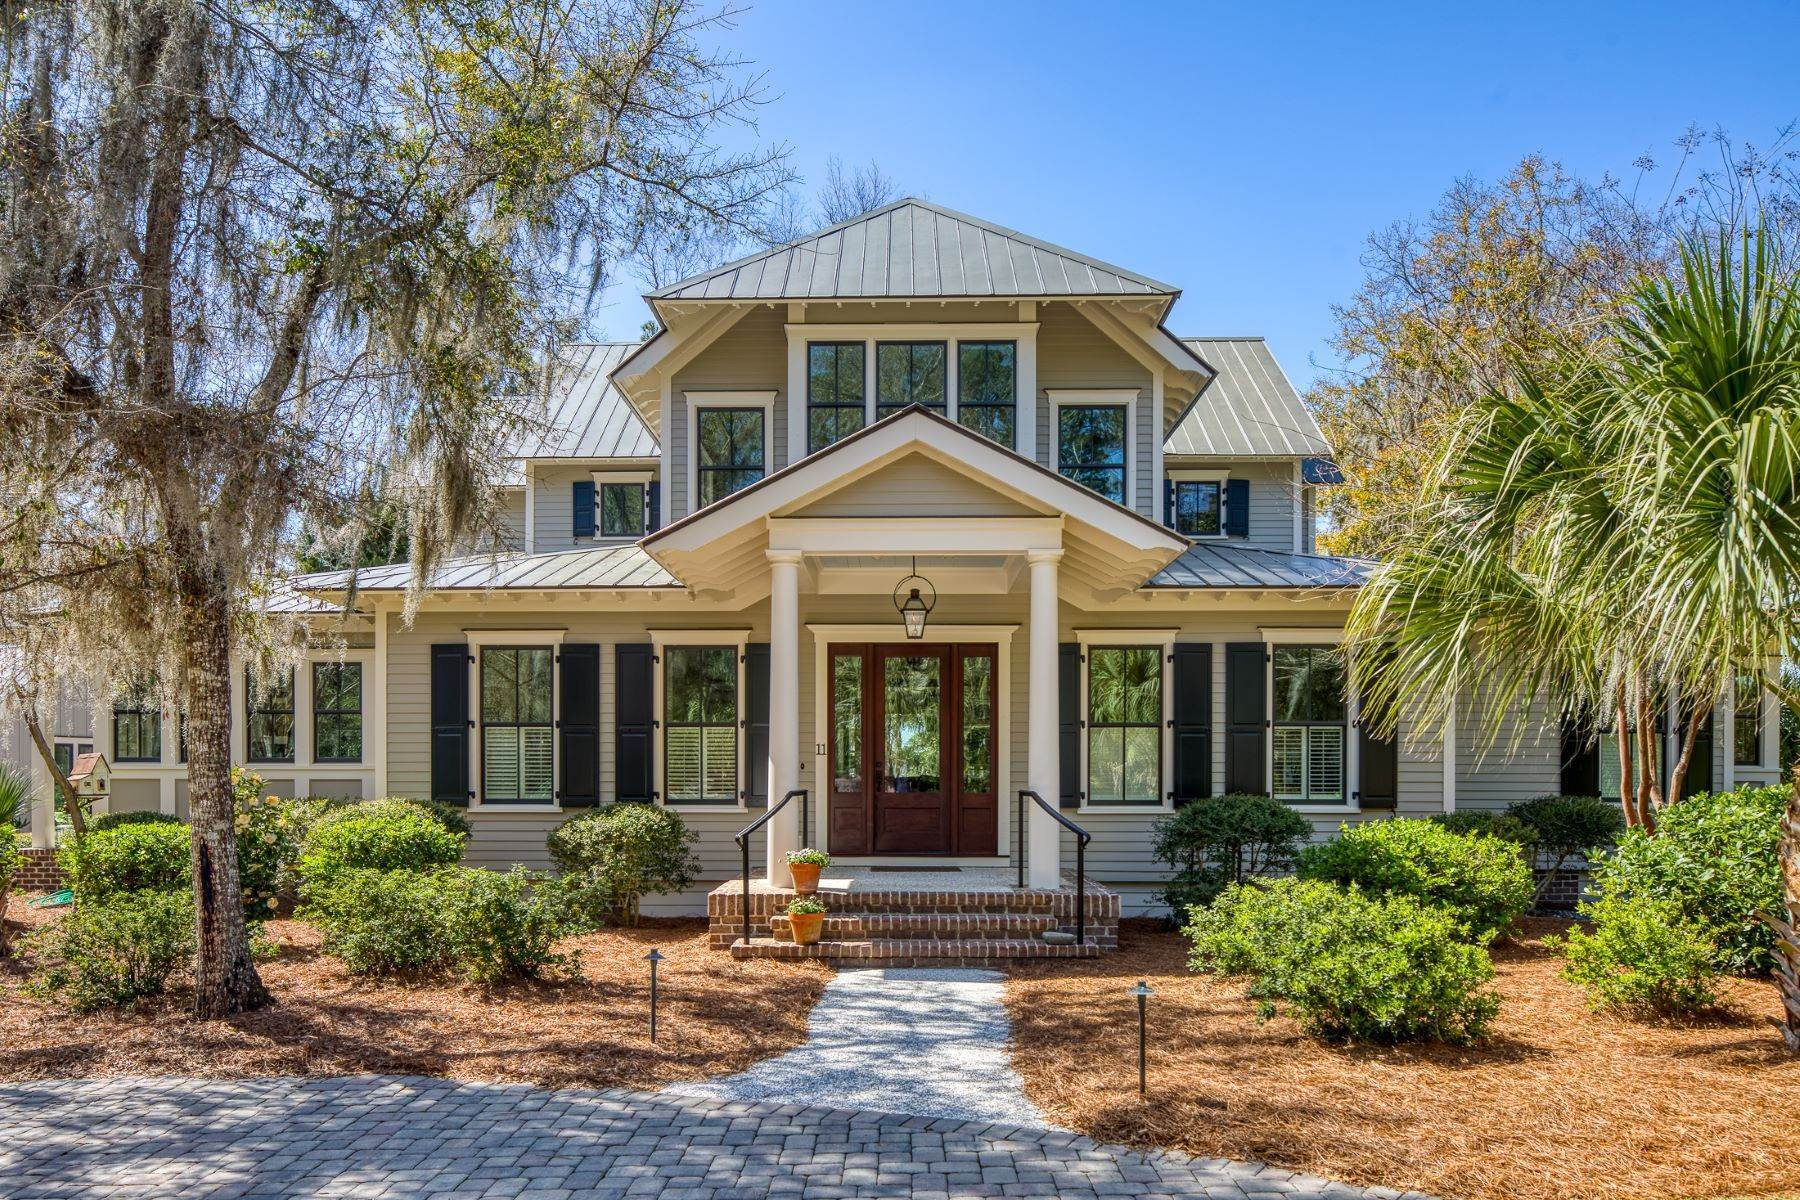 Single Family Homes for Sale at Peaceful Private Retreat 11 Dutch House Circle Bluffton, South Carolina 29910 United States